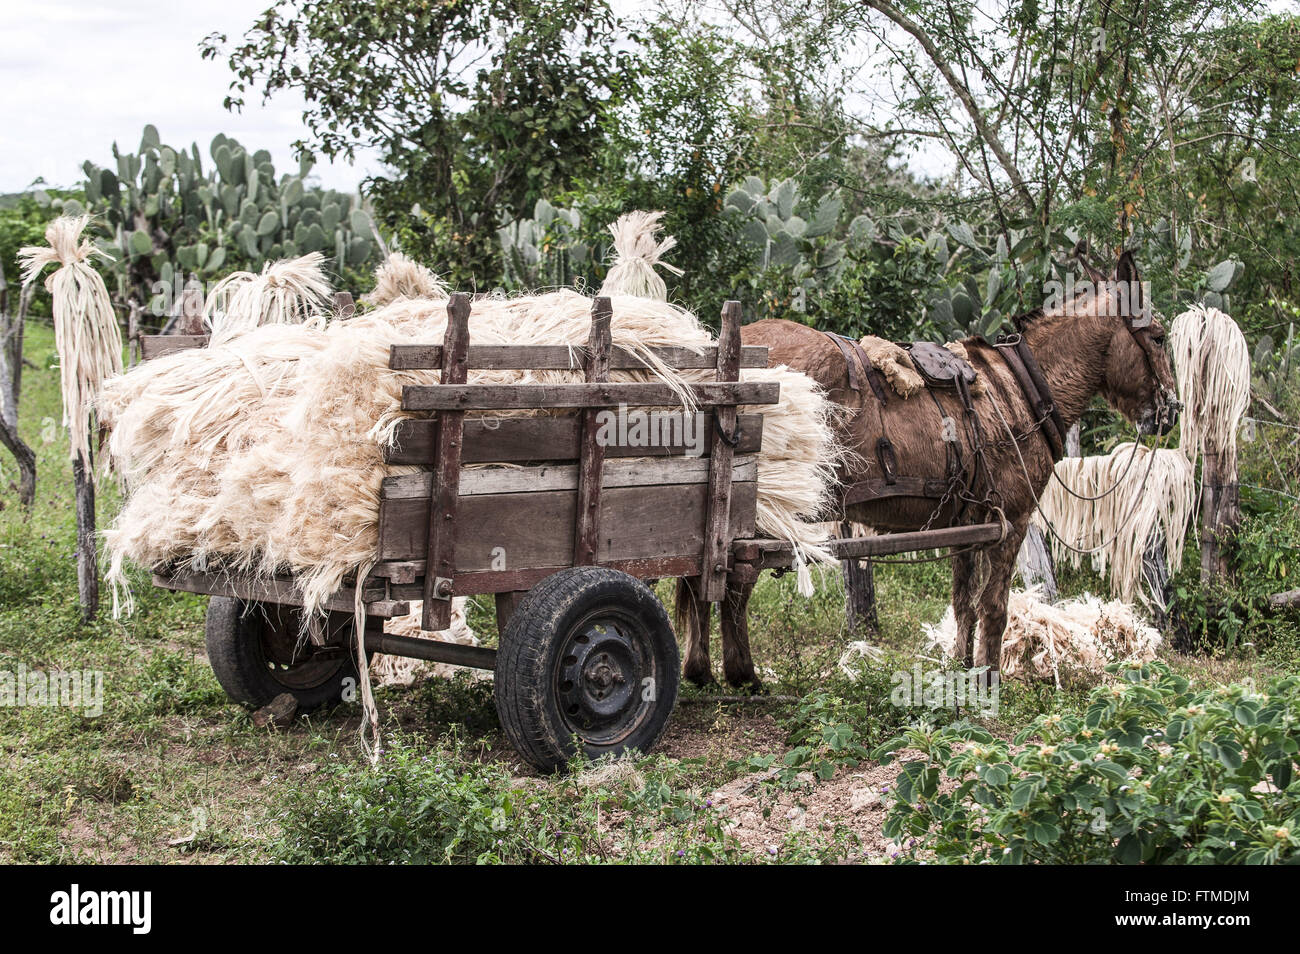 Carroca charged with sisal fibers processed and dried - Stock Image